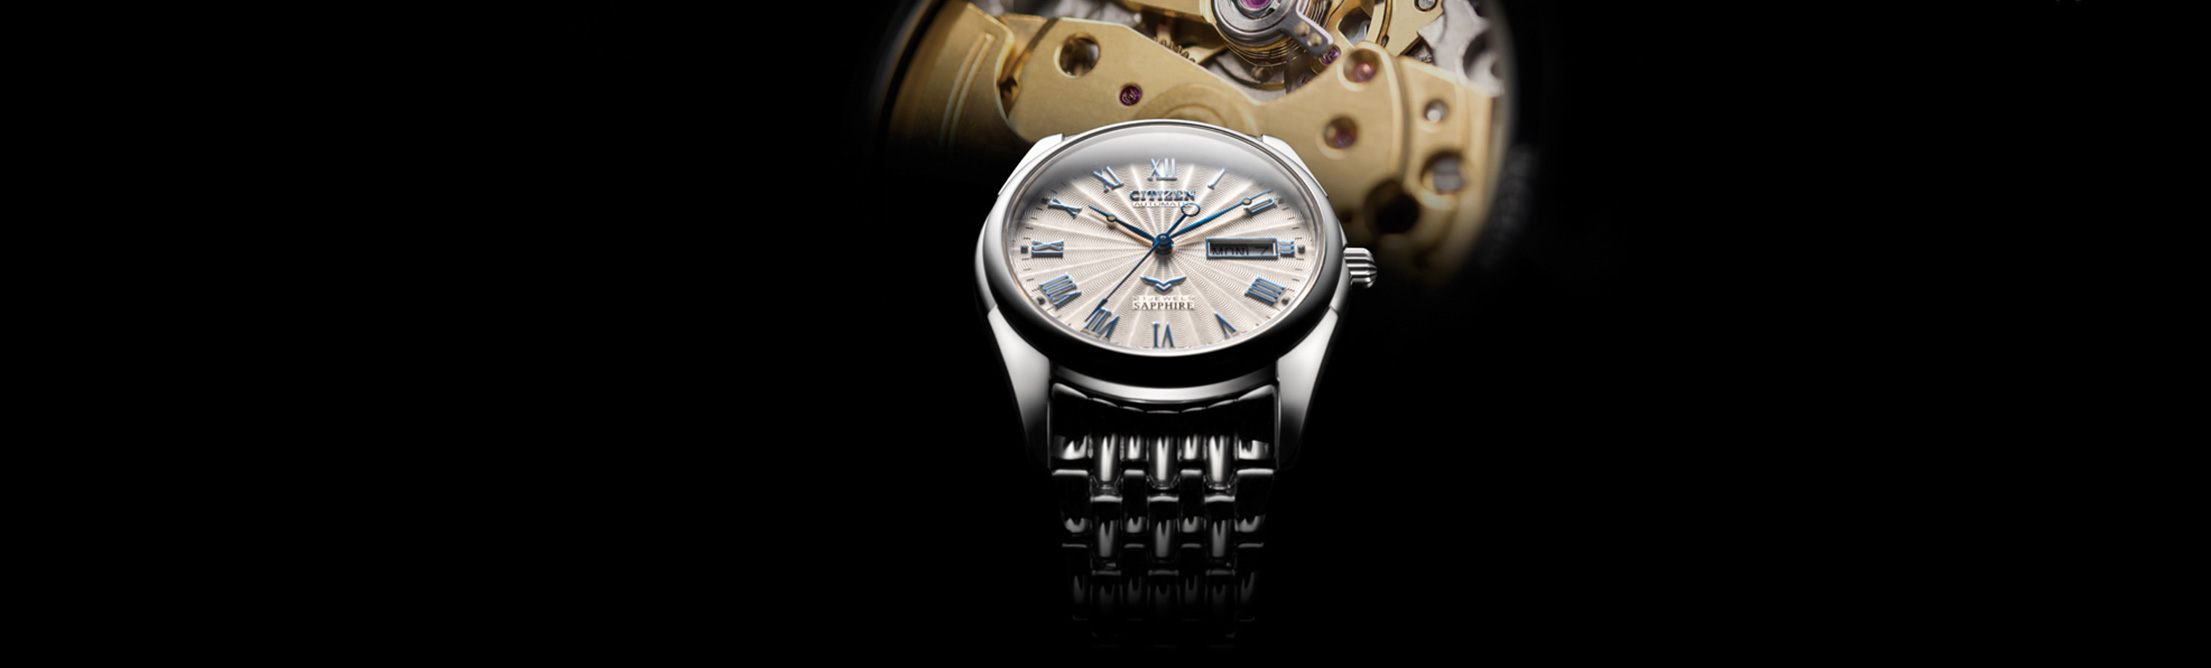 citizen-ladies-mechanical-watches